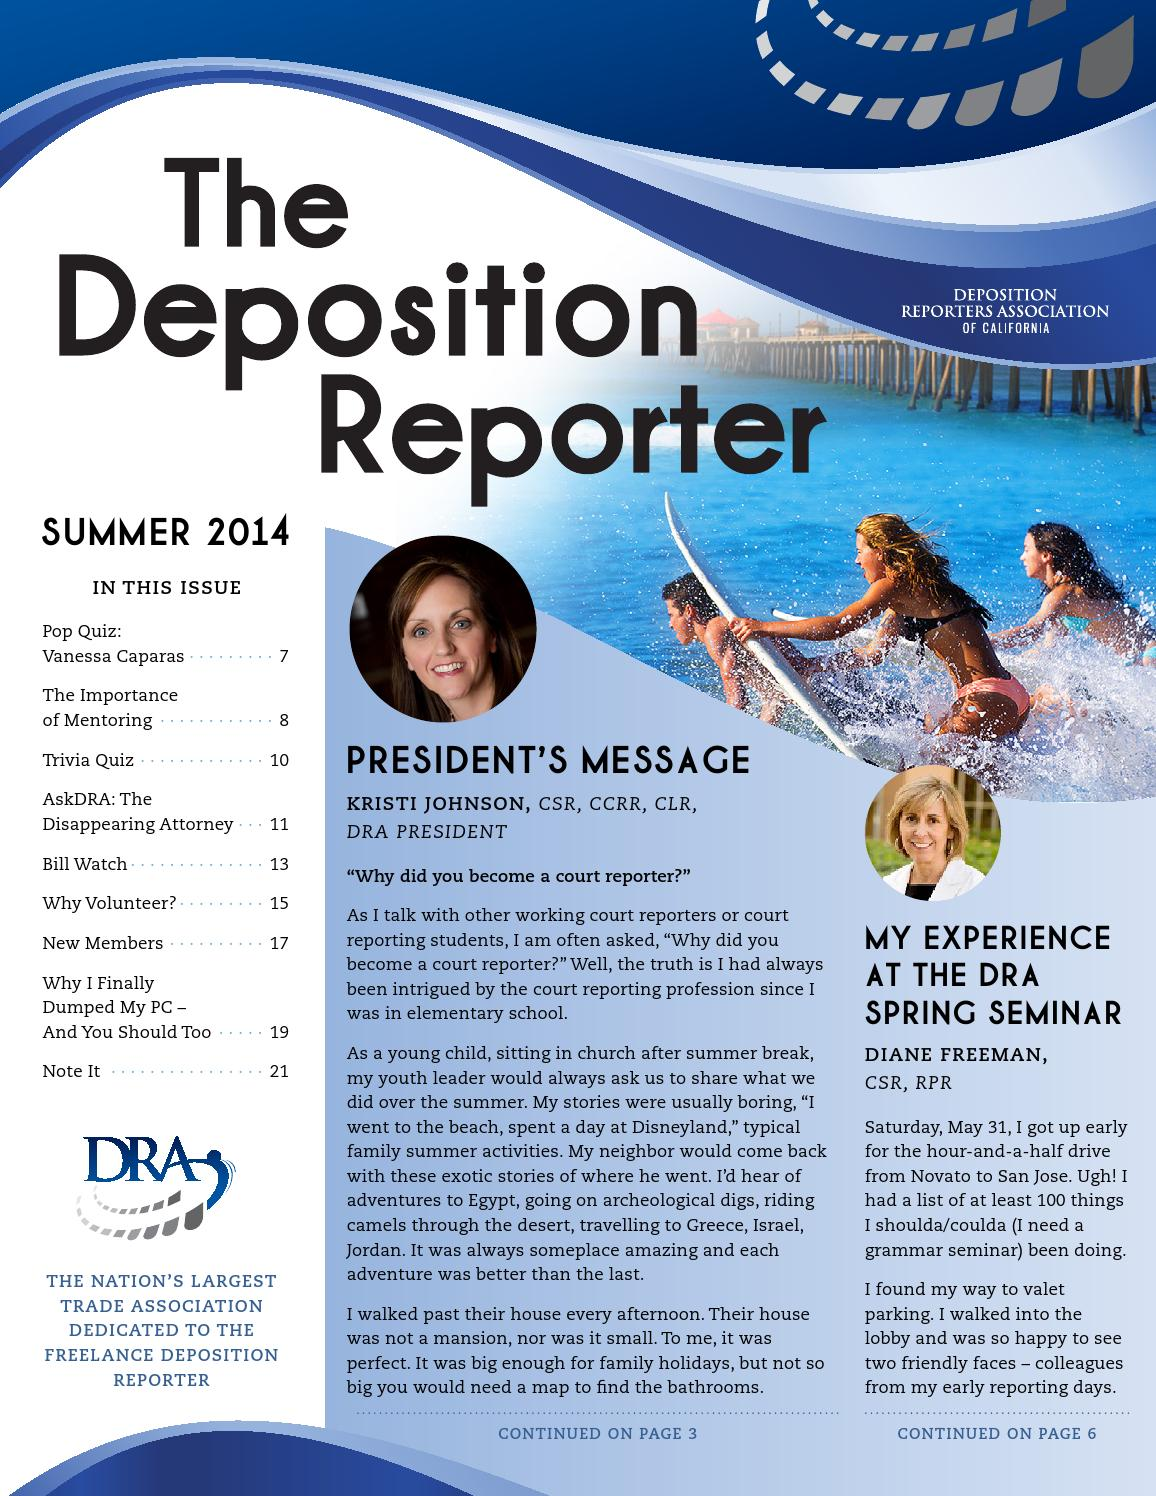 The Deposition Reporter: Summer 2014 by Deposition Reporters